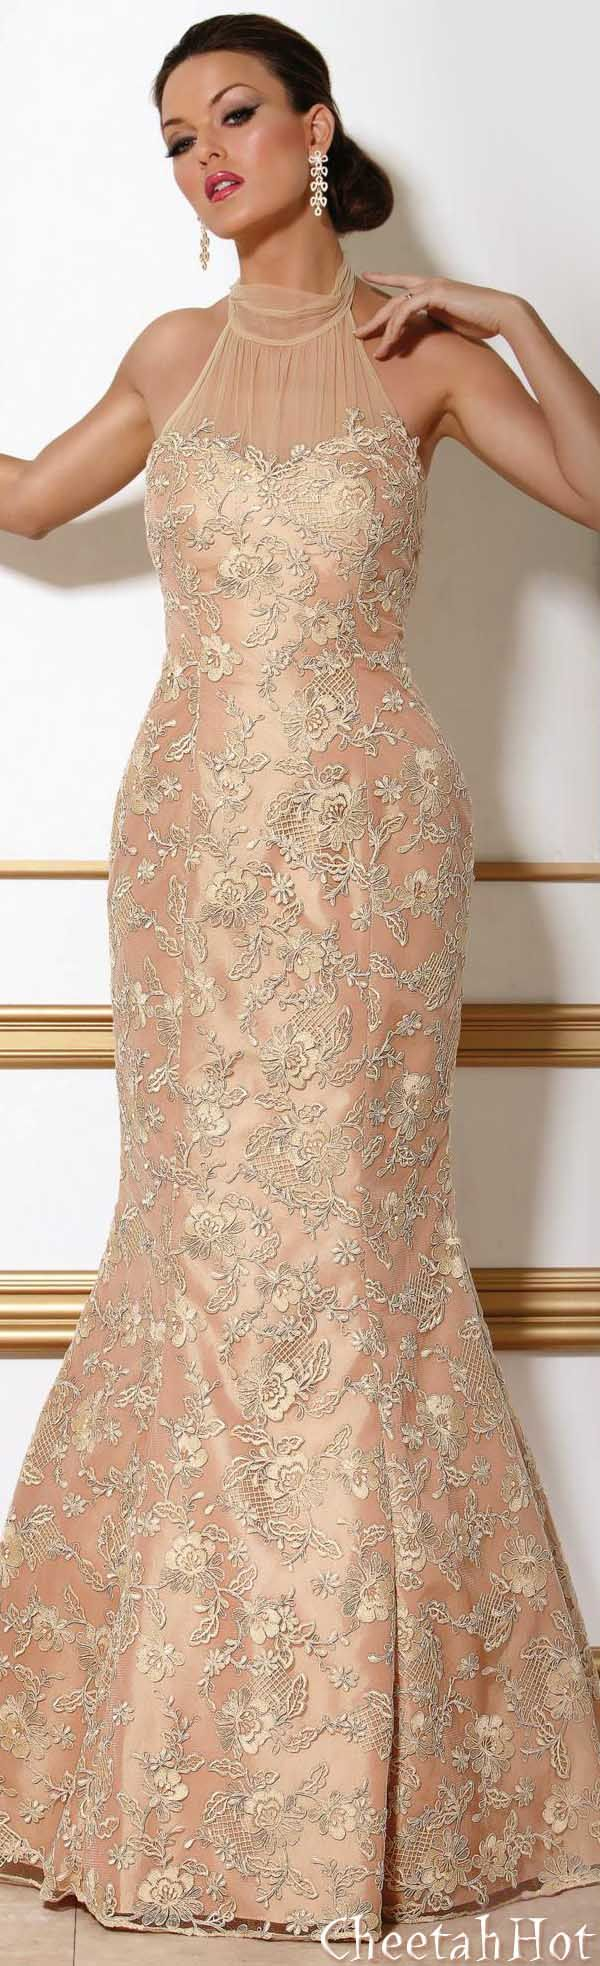 Long prom dress uu each woman has her style and elegance